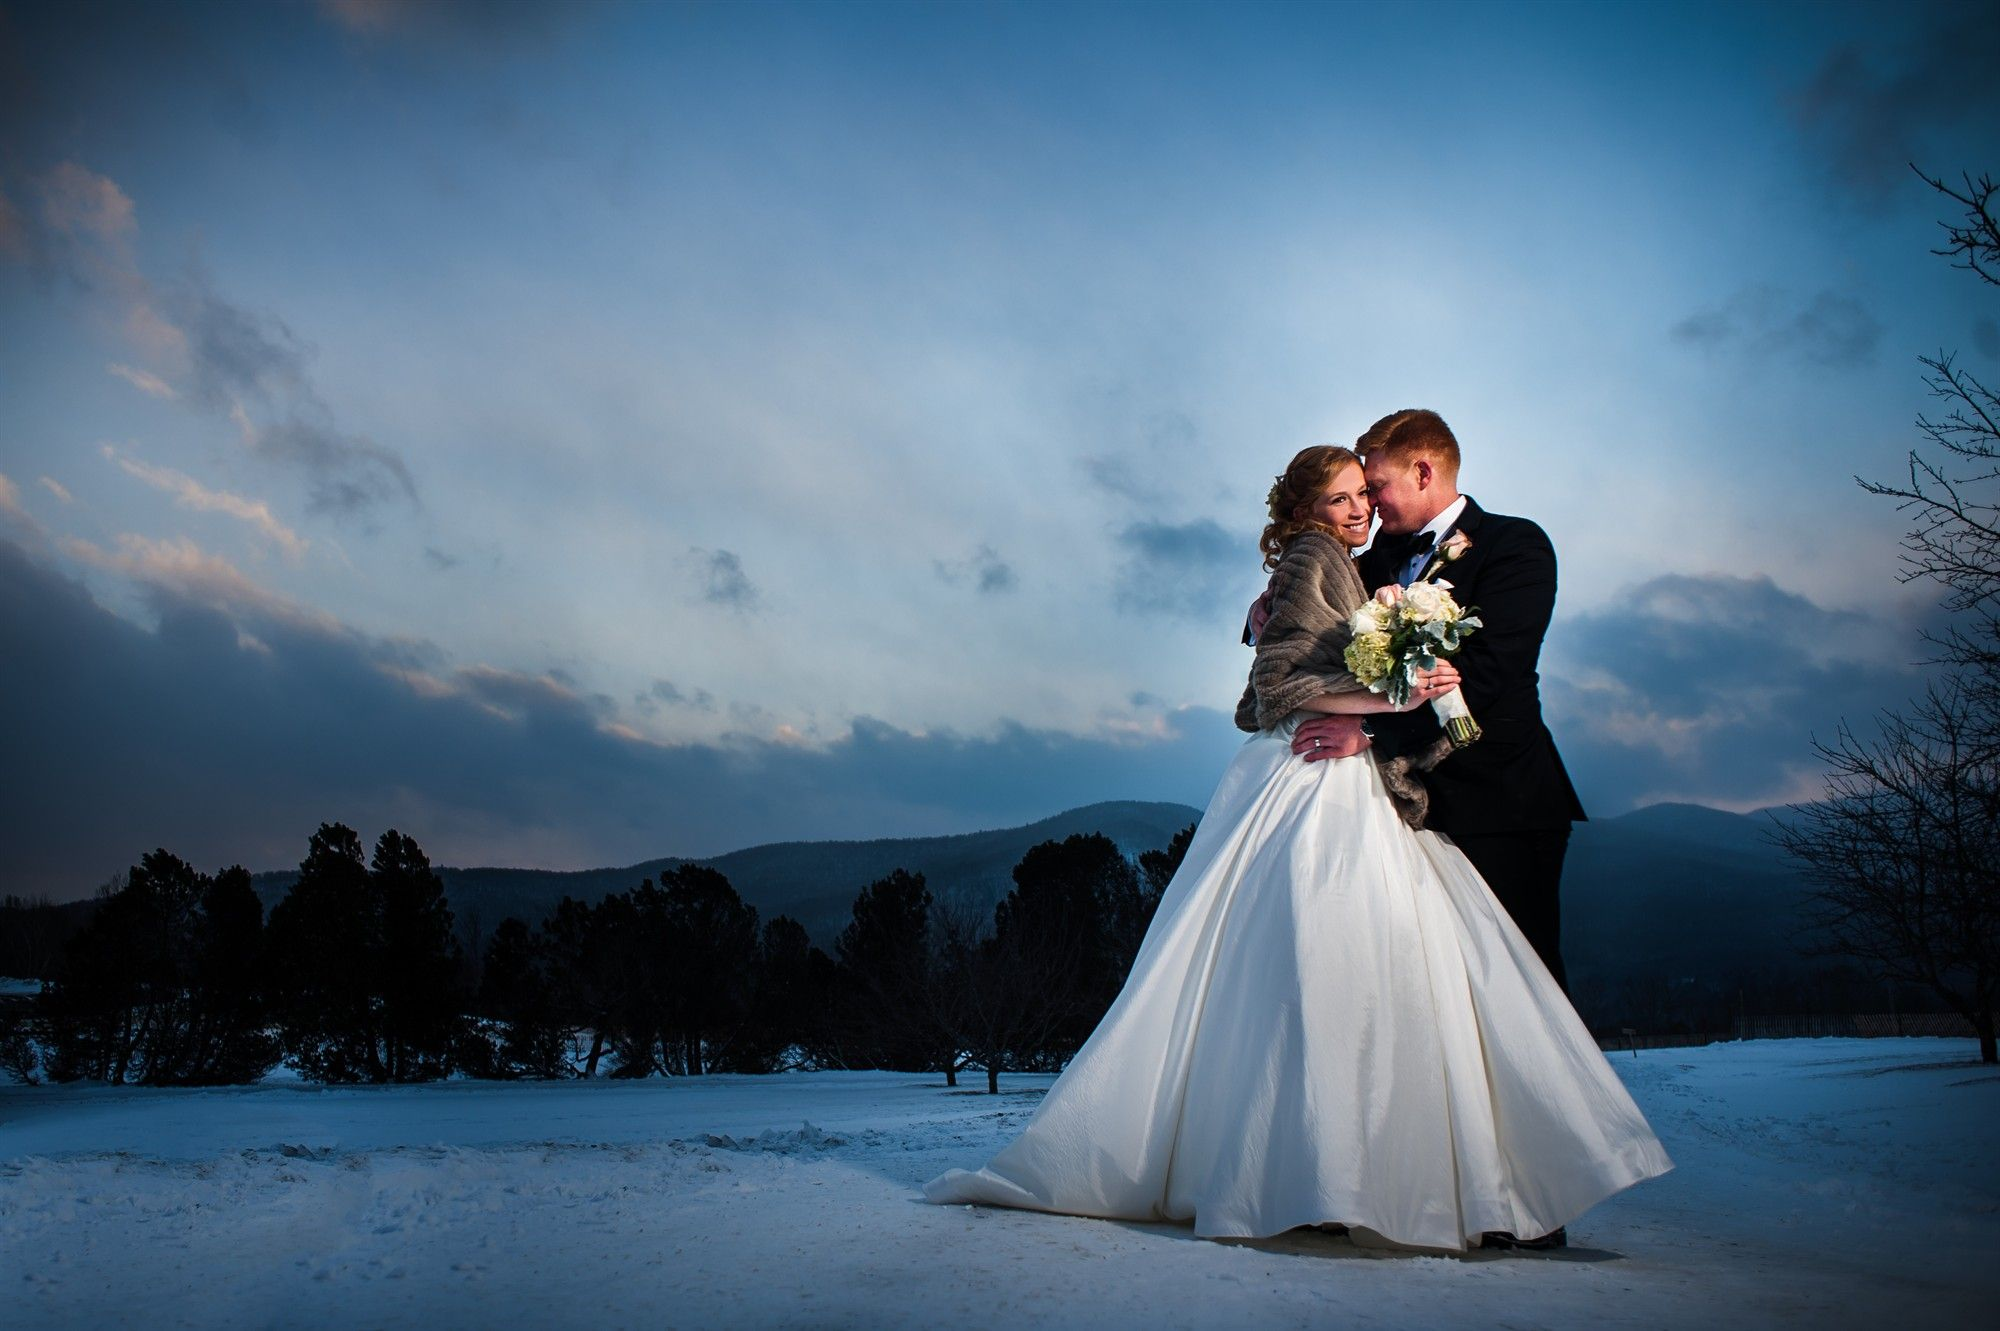 Stowe vt wedding venues mountain weddings in vermont winter weddings at trapp family lodge junglespirit Image collections